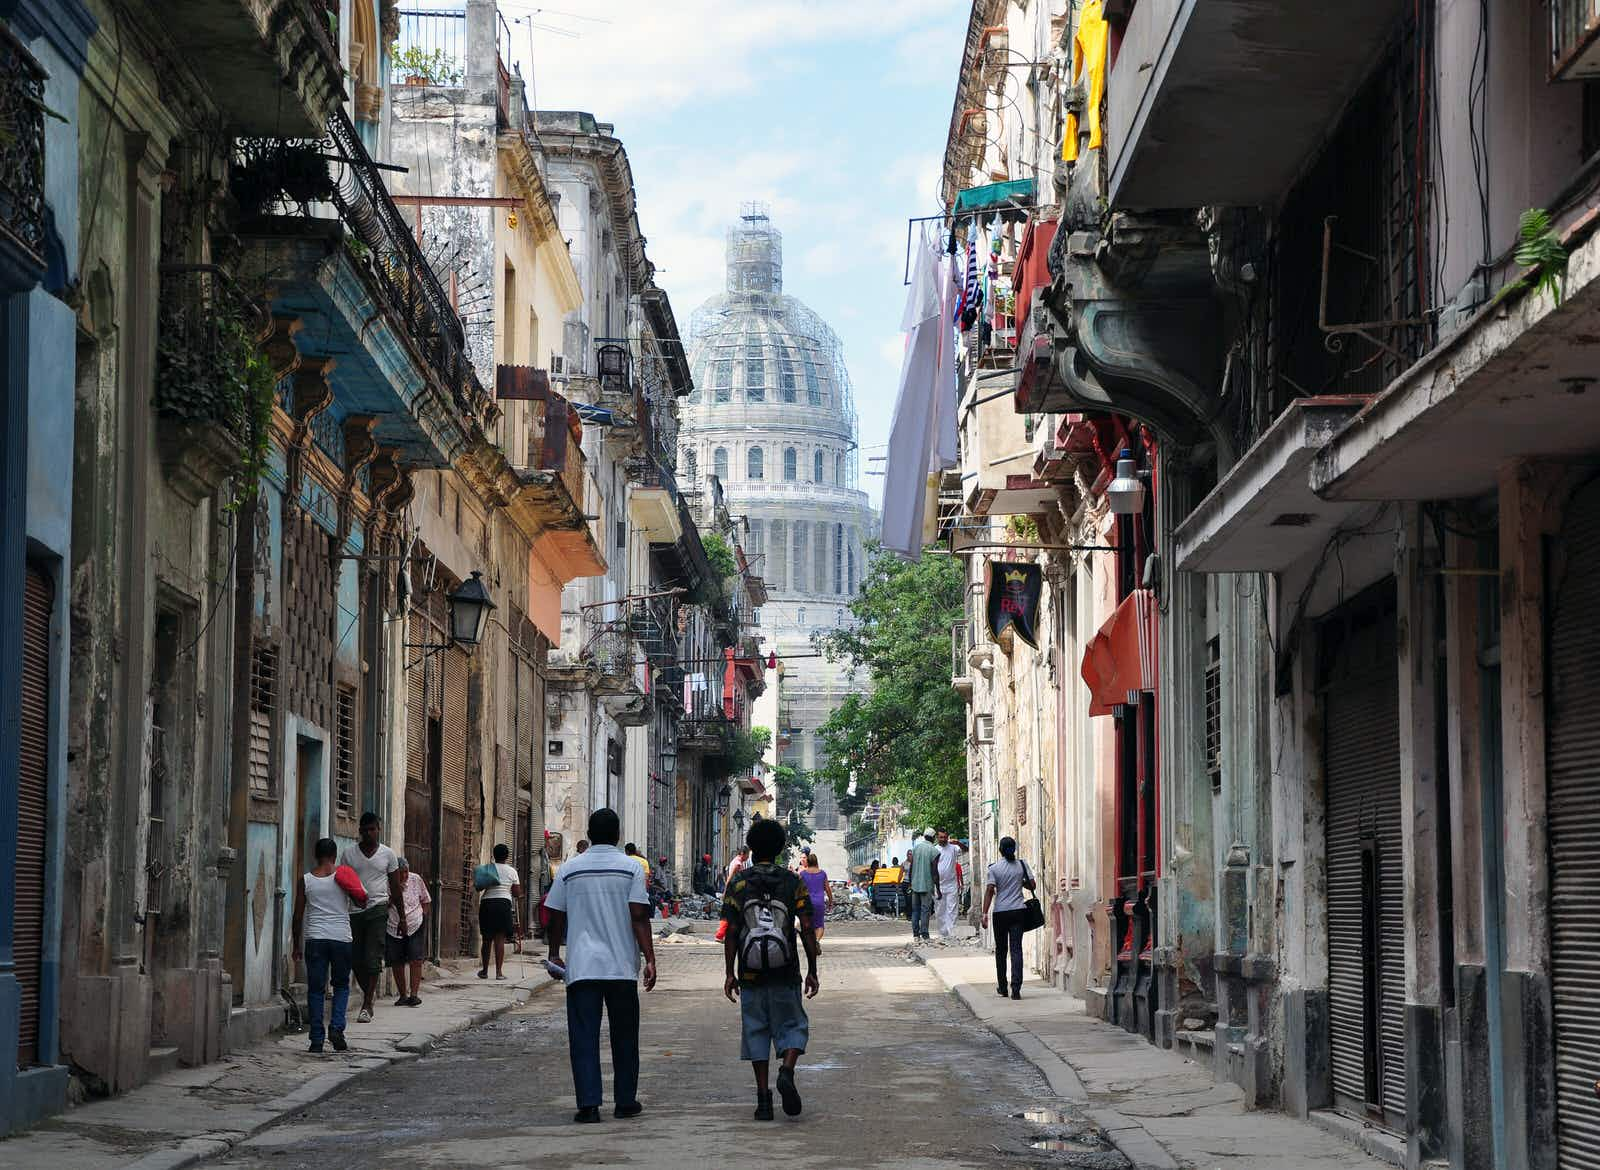 The Obamas' visit to Cuba: 10 things they should do